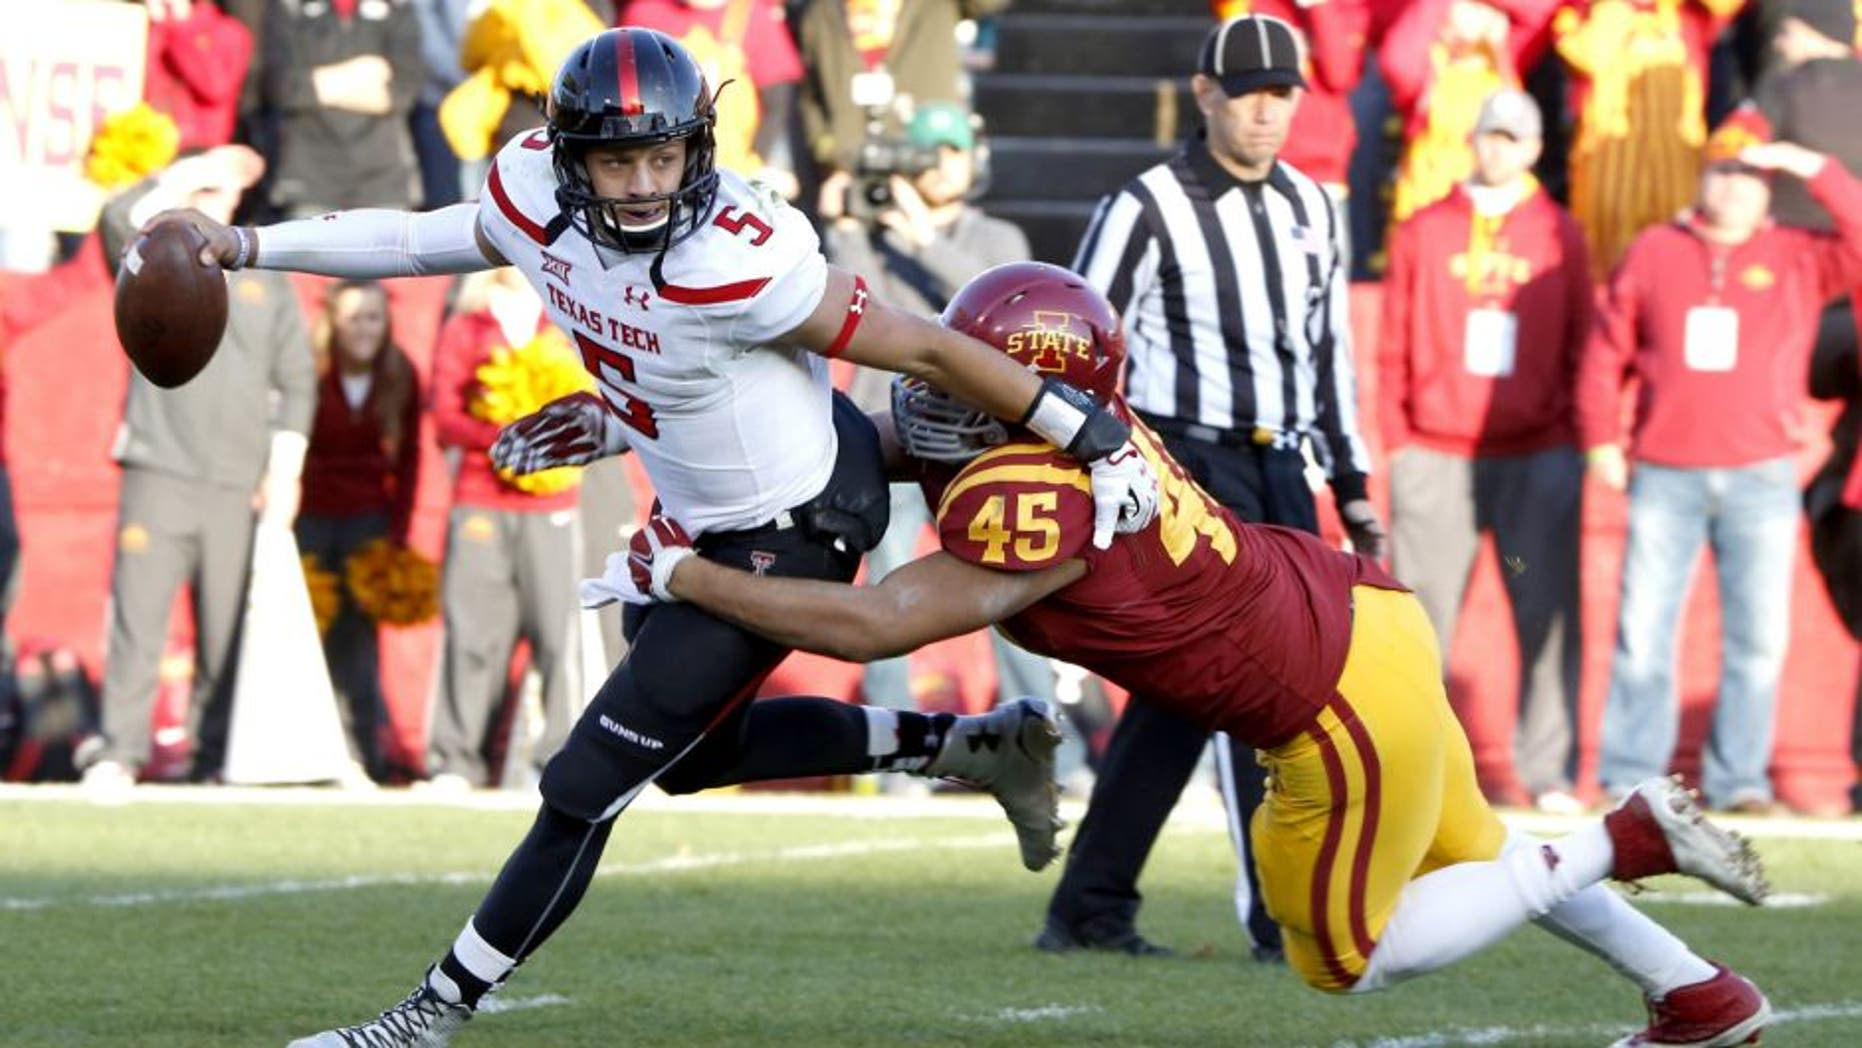 AMES, IA - NOVEMBER 22: Quarterback Patrick Mahomes #5 of the Texas Tech Red Raiders is tackled by defensive end Dale Pierson #45 of the Iowa State Cyclones in the first half of play at Jack Trice Stadium on November 22, 2014 in Ames, Iowa. (Photo by David K Purdy/Getty Images)